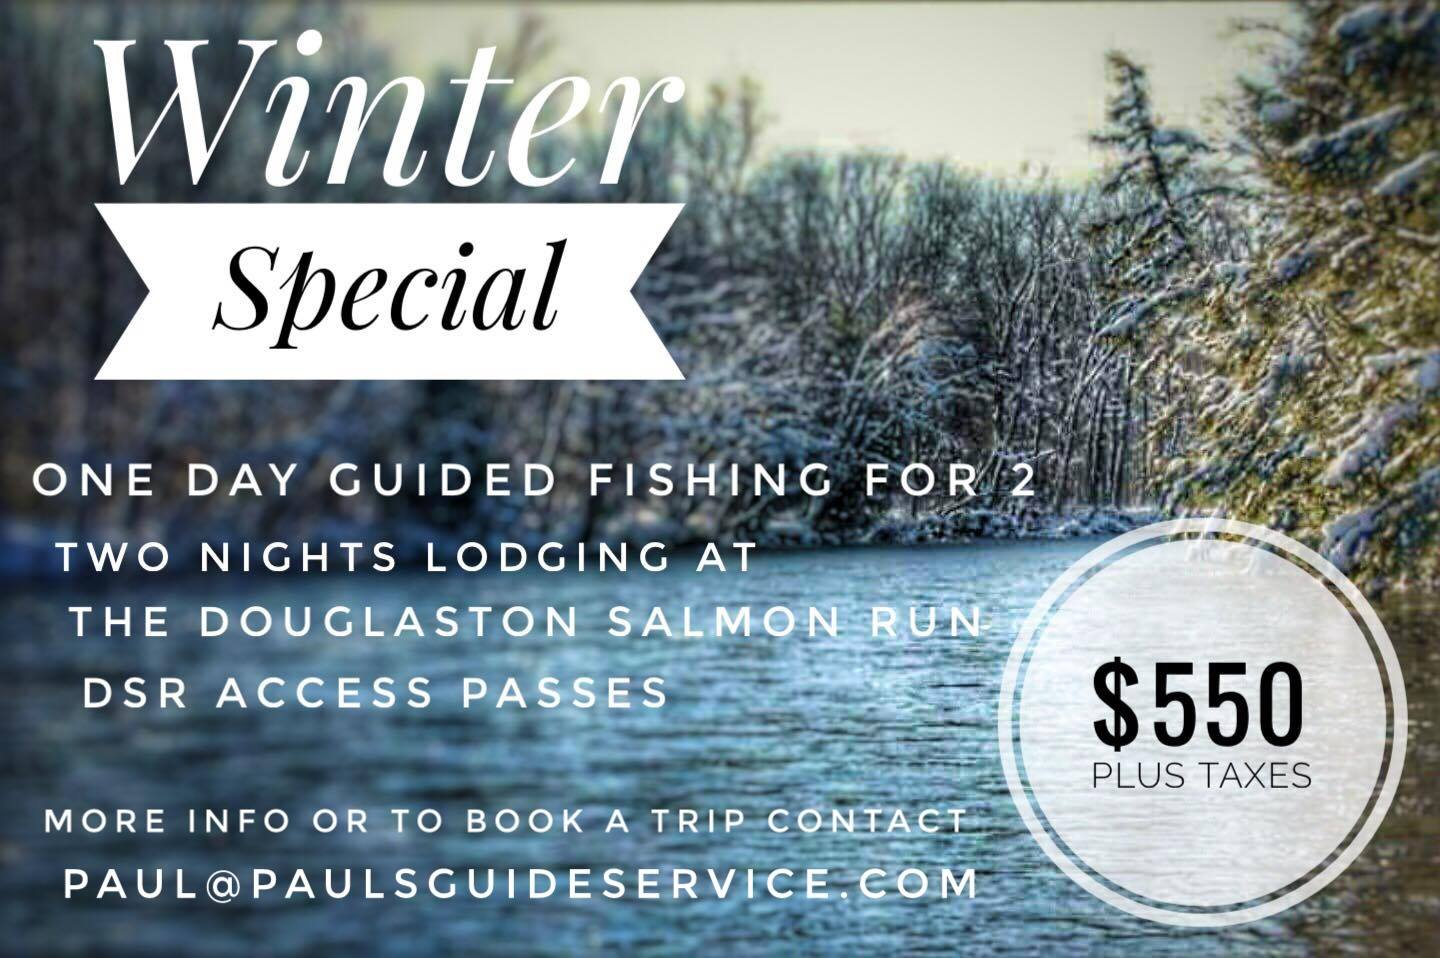 Douglaston-Salmon-Run..Pauls-guide-service.